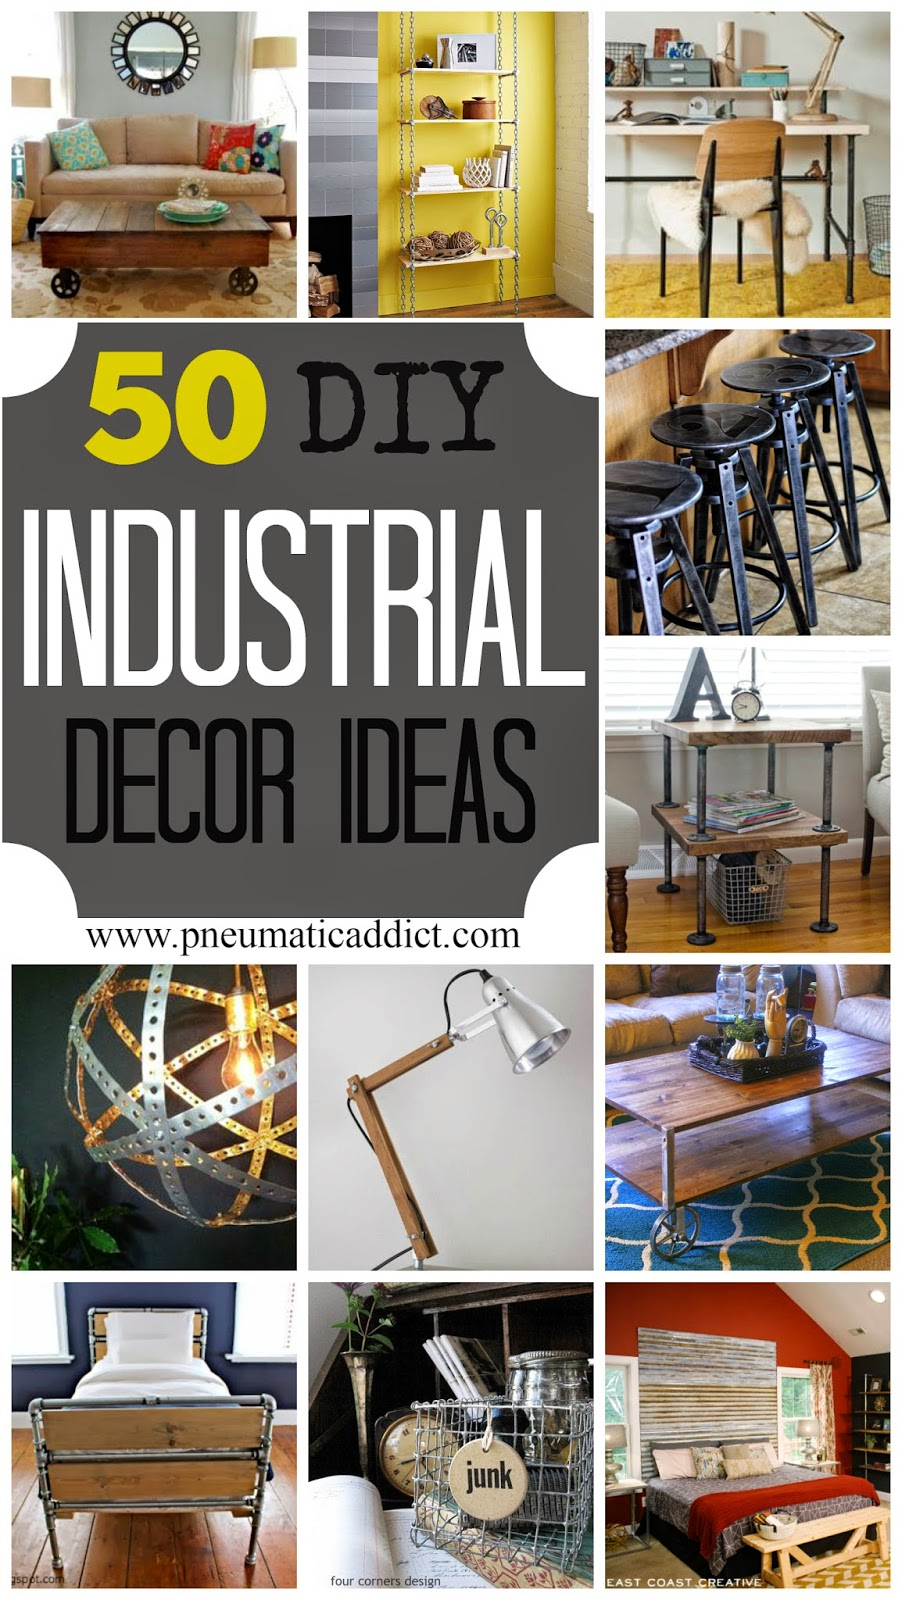 50 diy industrial decor ideas